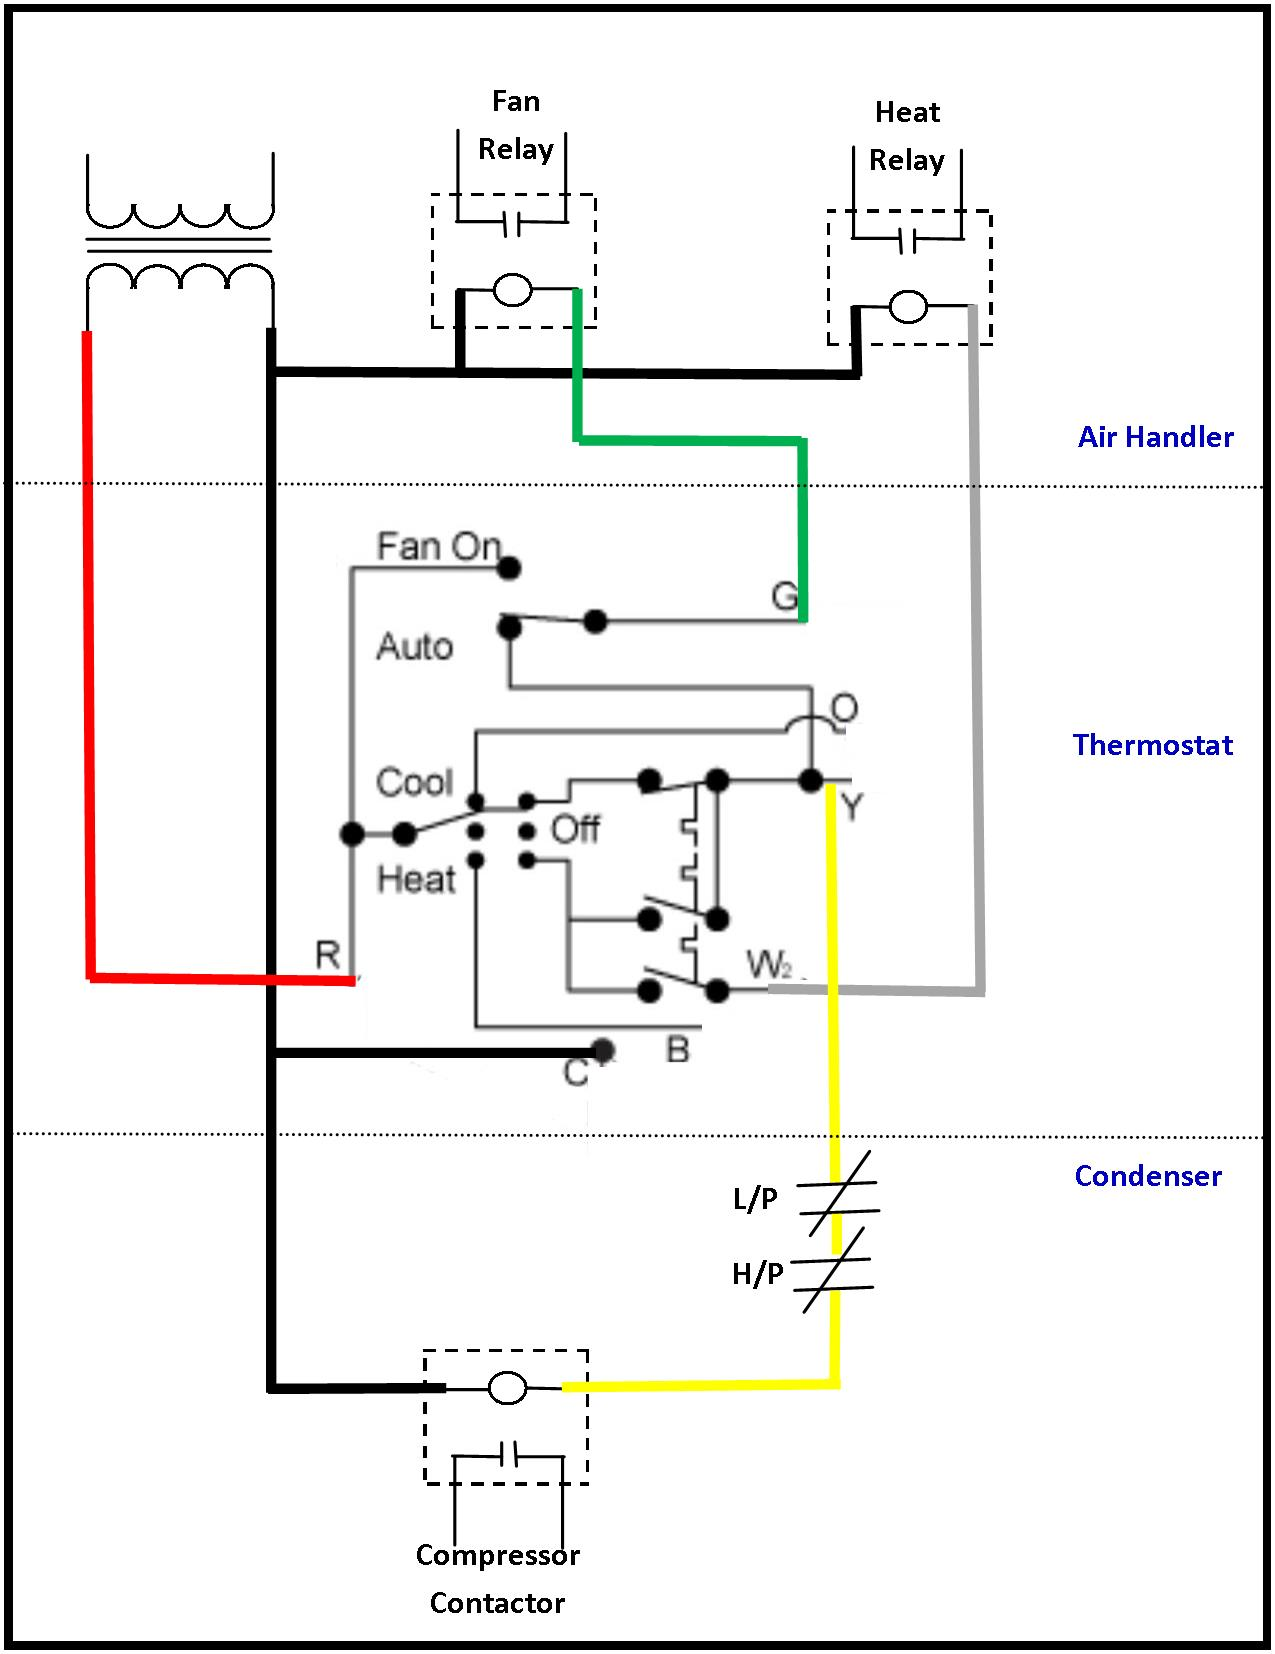 low voltage thermostat wiring diagram with Central Ac Wiring Diagram on Central Ac Wiring Diagram likewise Electrical Wiring Color Codes likewise The Sophisticated Diy Home Automation System additionally Aircon 3 Ton also Gvd 6 Wiring Diagram Wiring Diagrams.